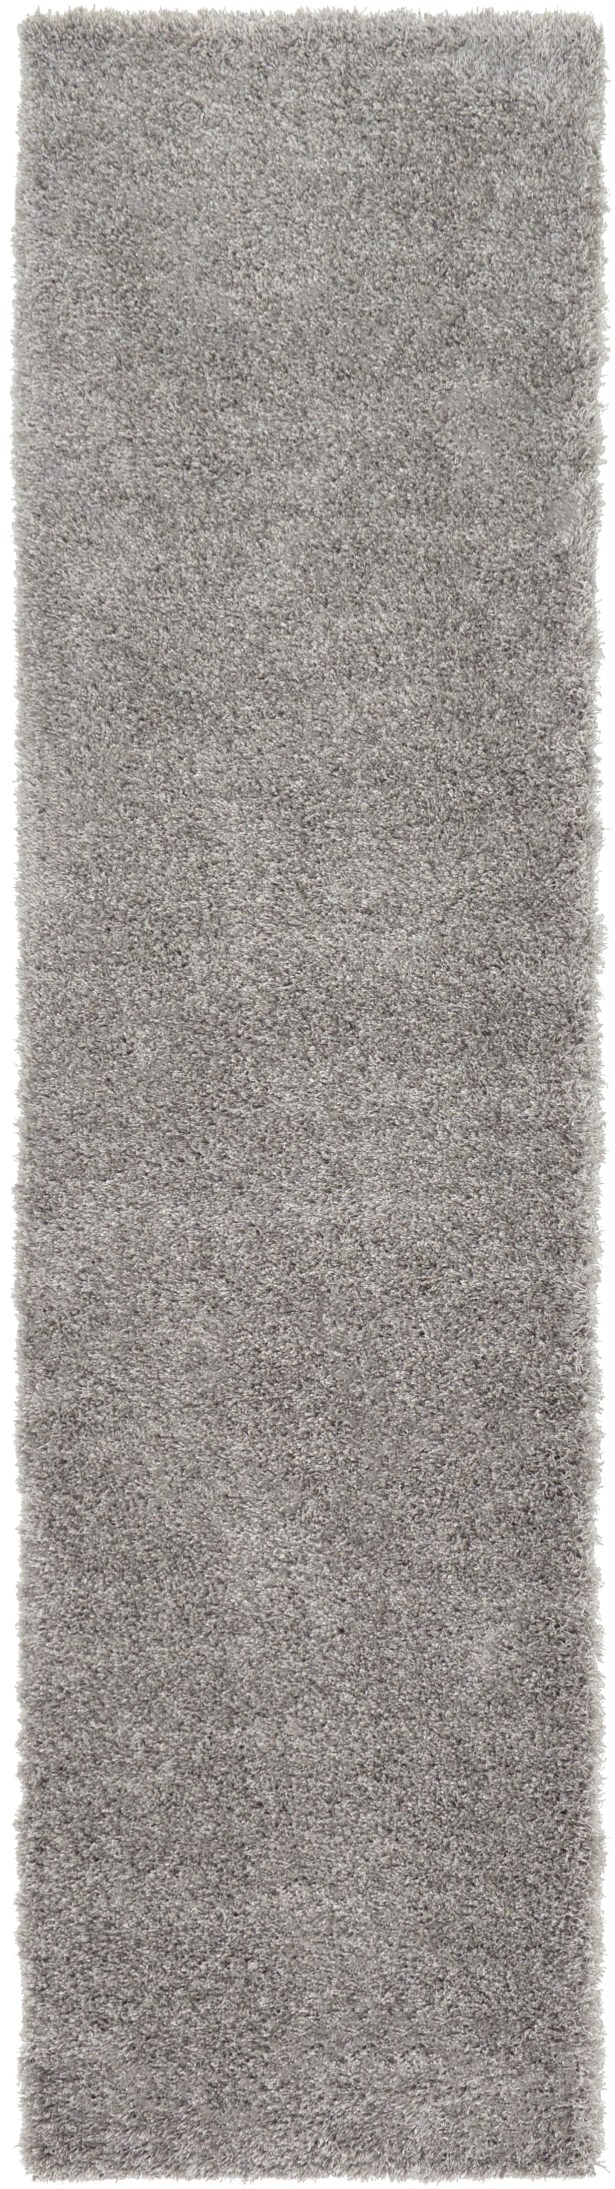 Evelyn Gray Area Rug Rug Size: Runner 2'7